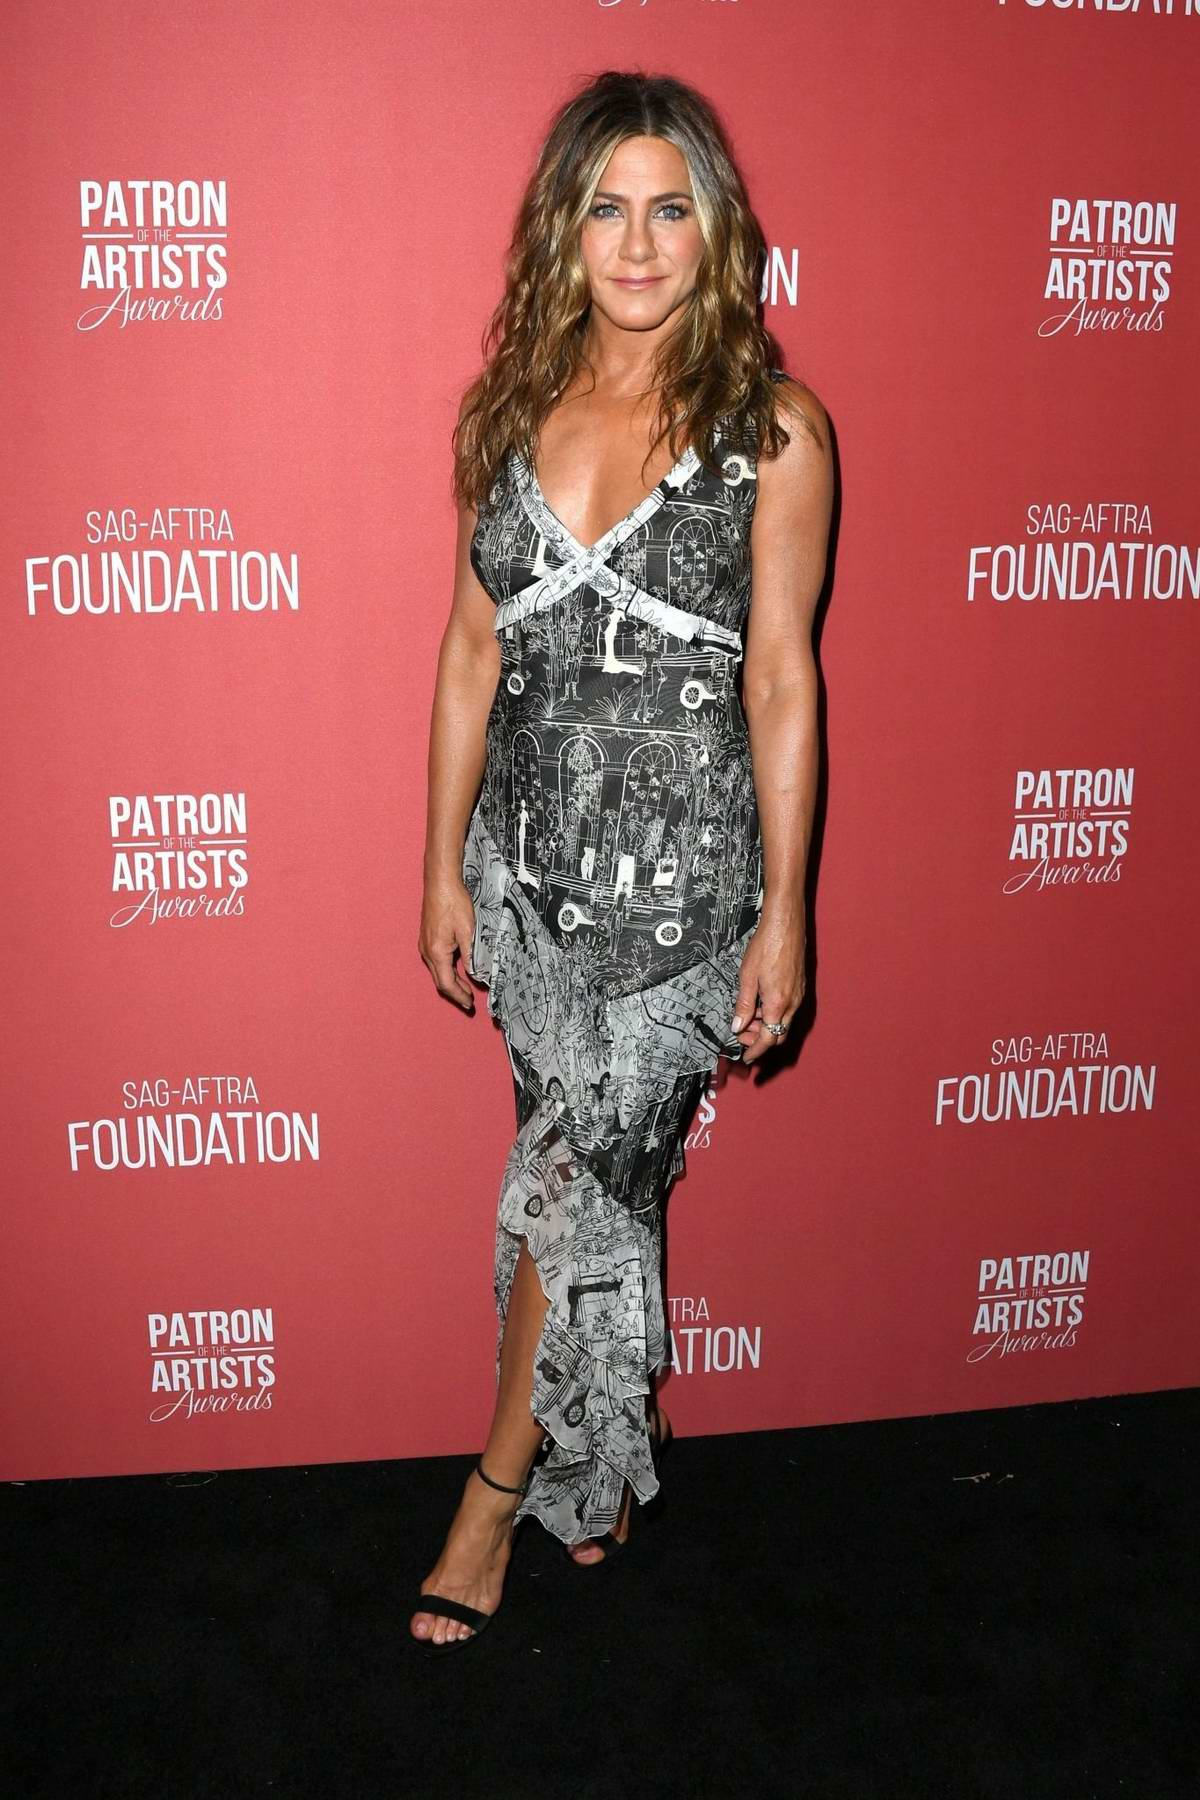 Jennifer Aniston attends the 4th Annual Patron of the Artists Awards in Los Angeles